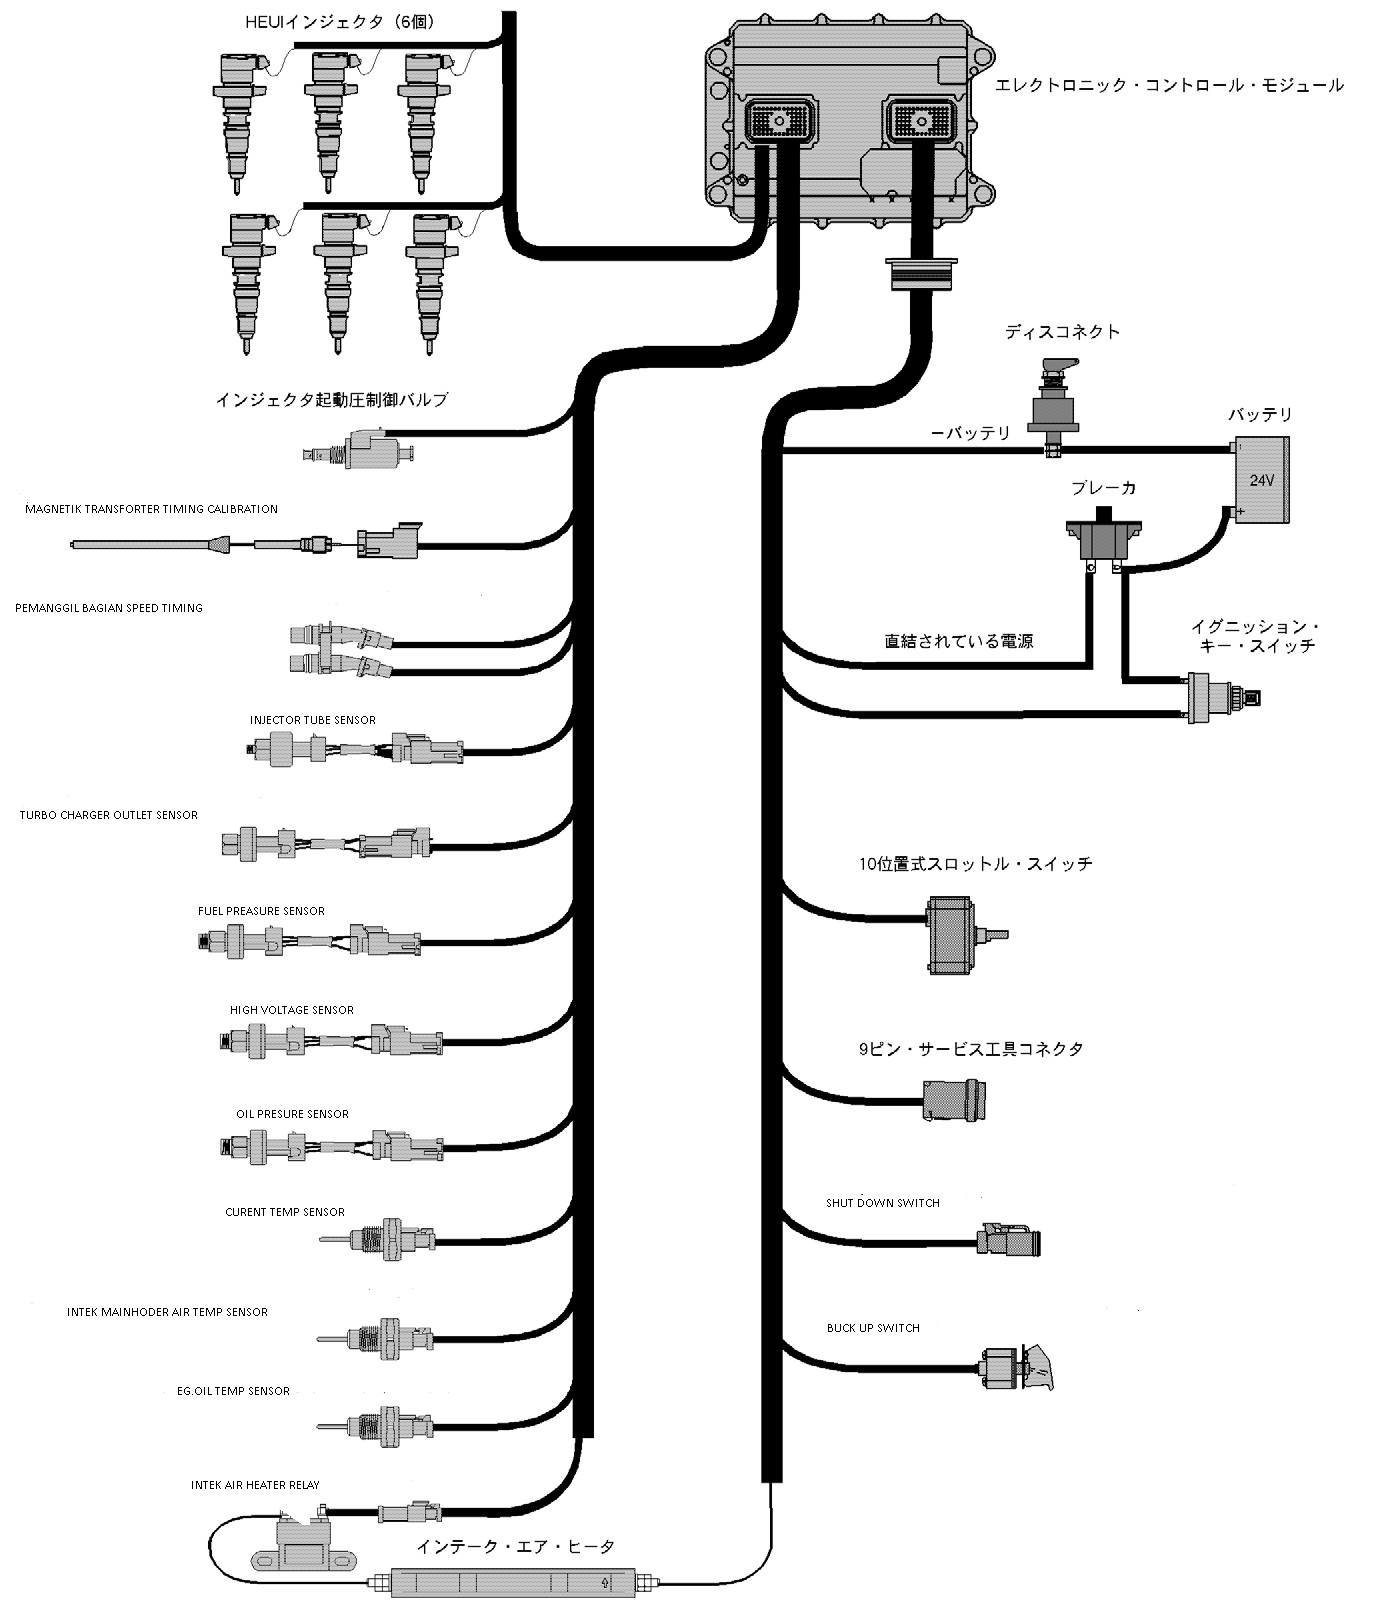 WRG-3749] 3306 Cat Engine Timing Marks Diagram